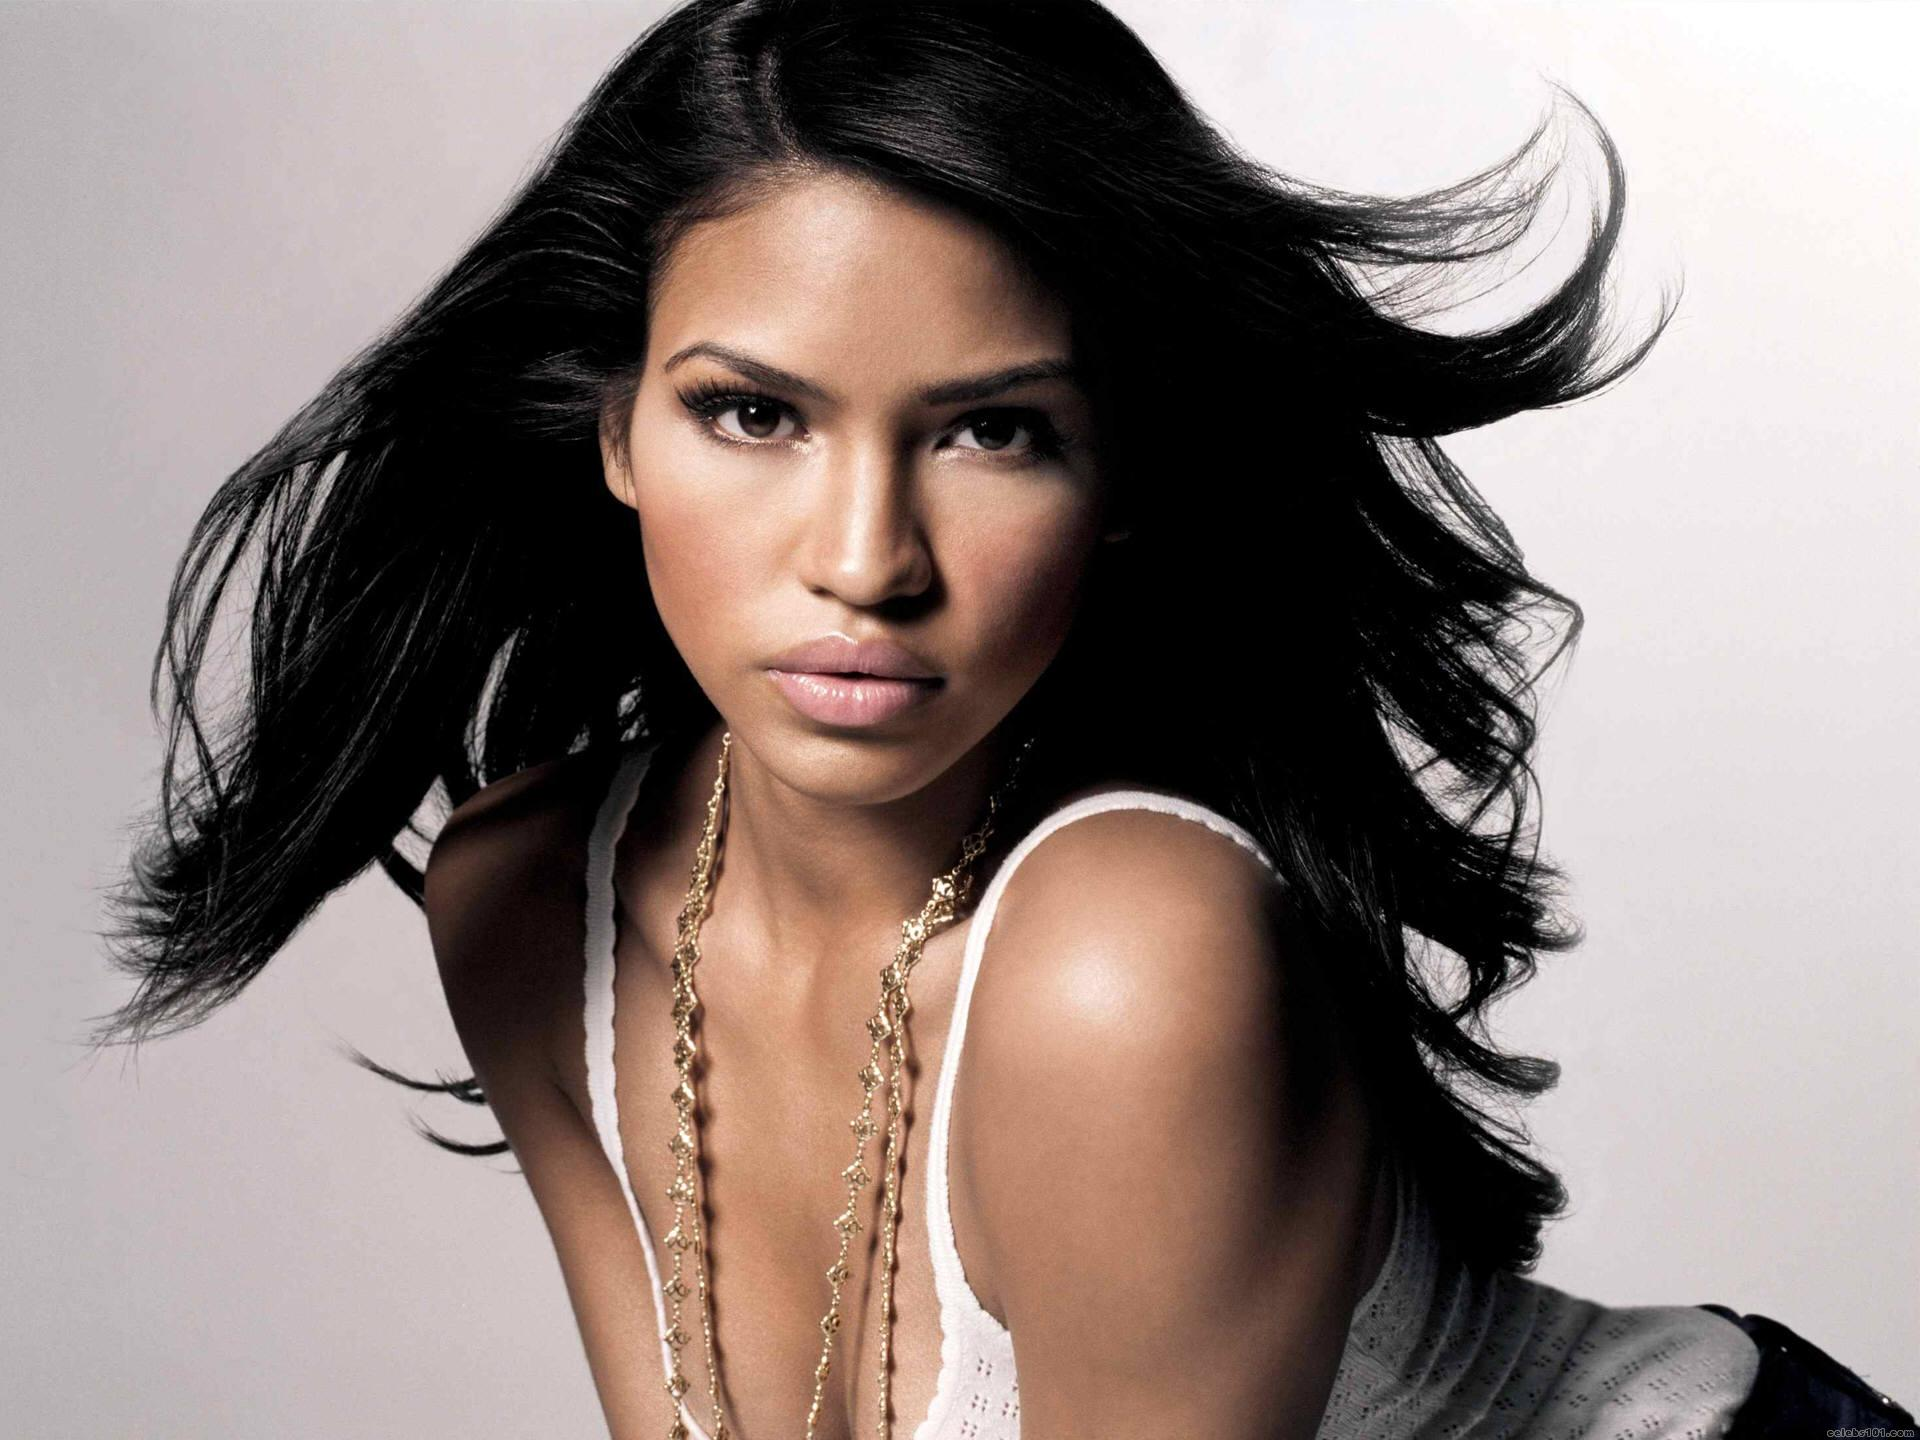 cassie wallpapers photos images - photo #3